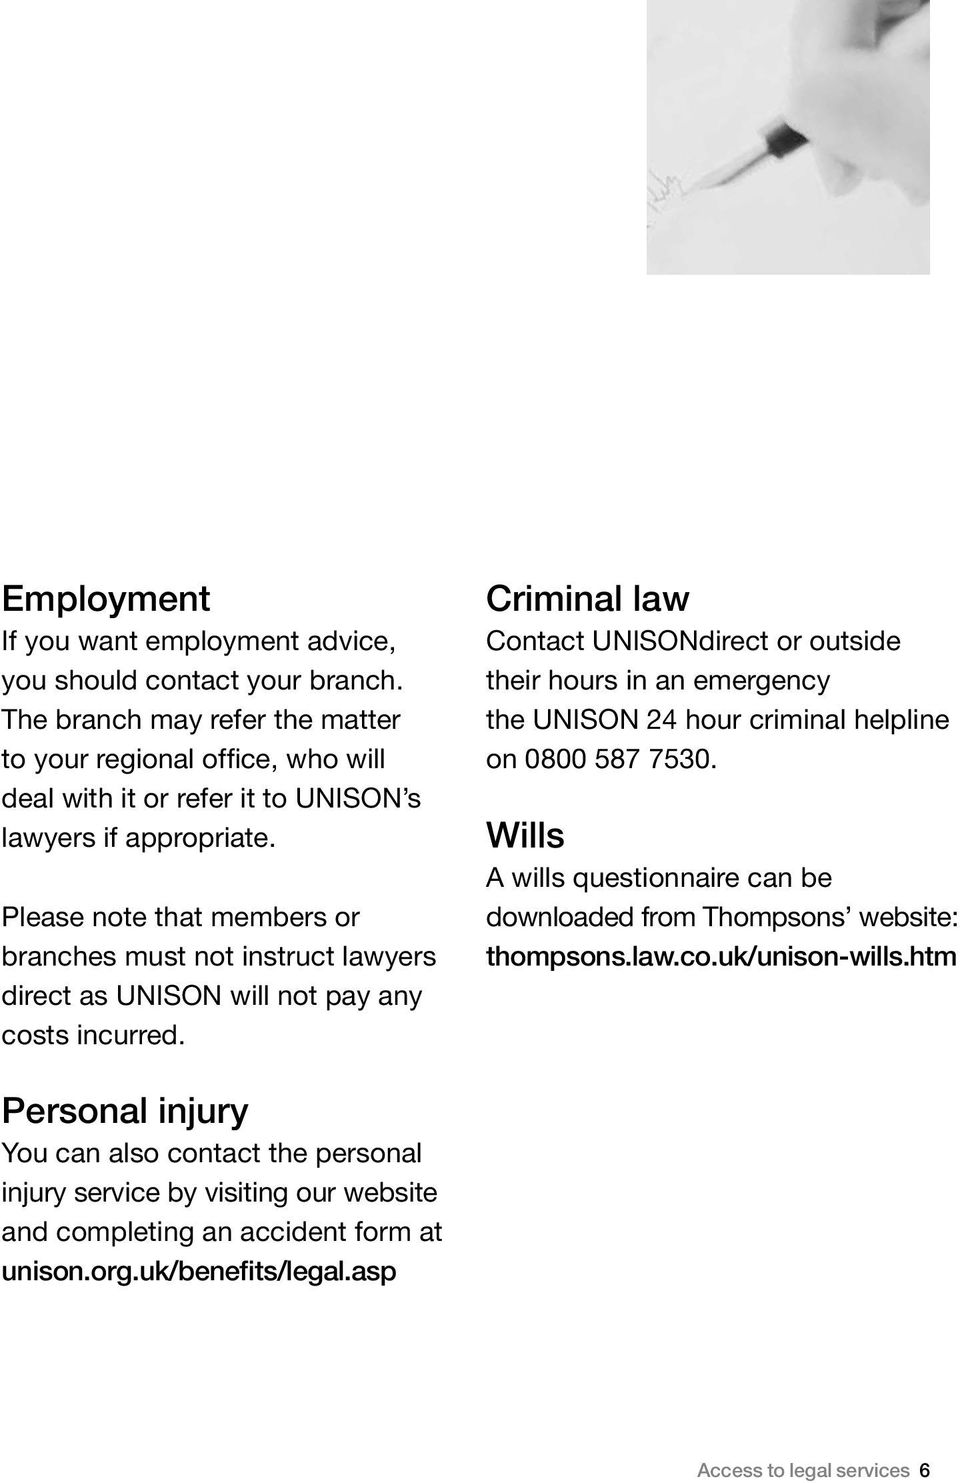 Please note that members or branches must not instruct lawyers direct as UNISON will not pay any costs incurred.